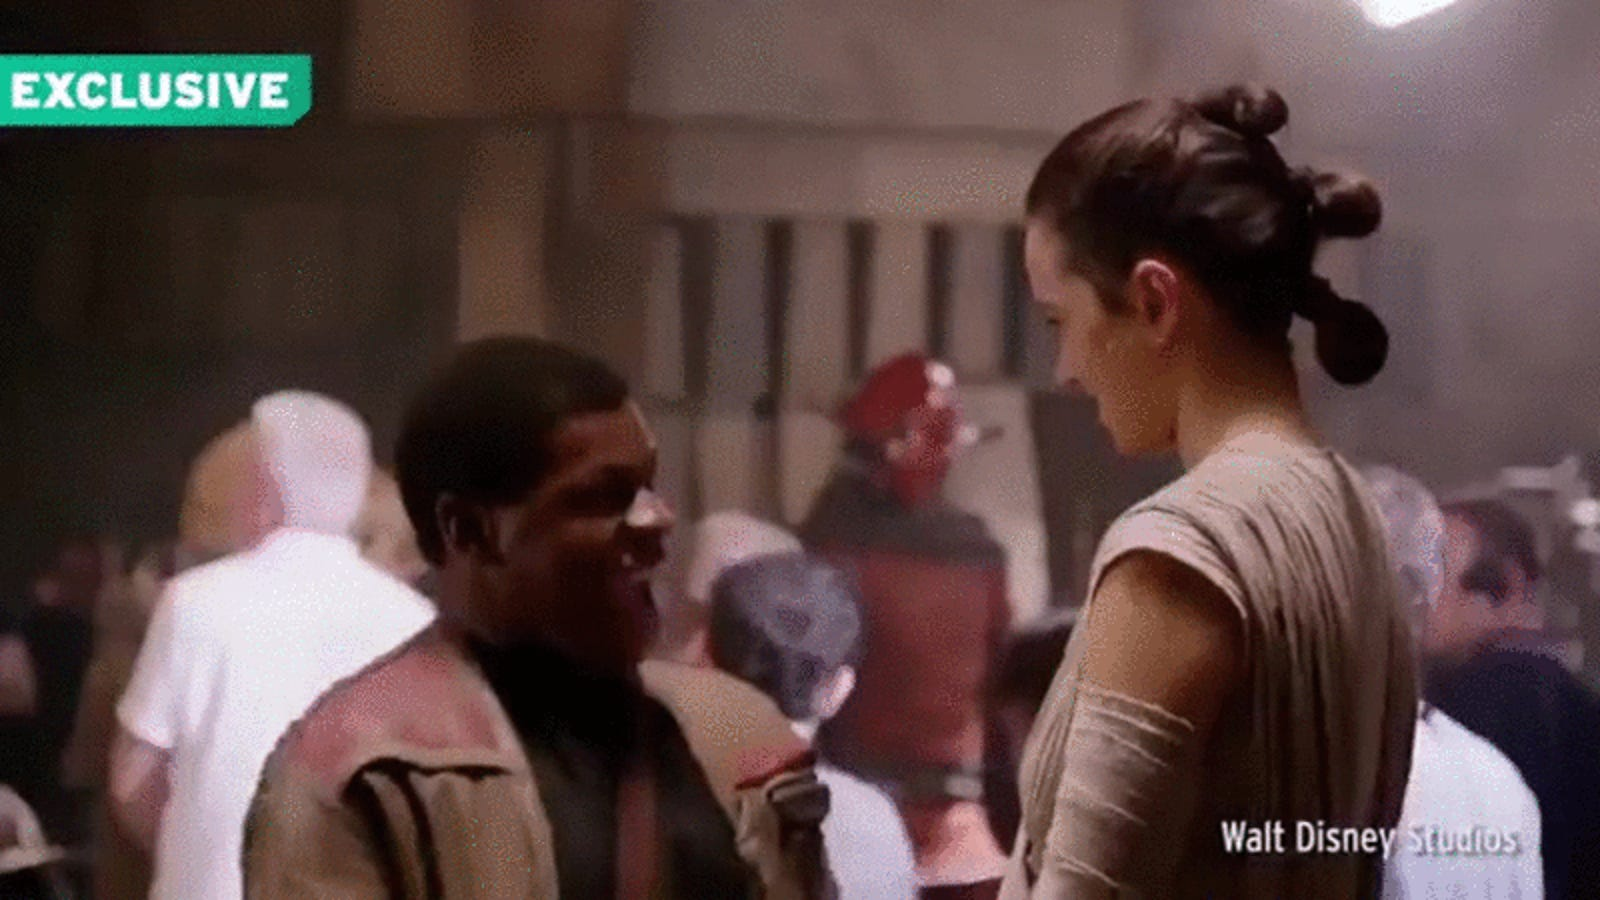 Daisy Ridley and John Boyega Rapping On the Set of Star Wars Fills Our Hearts With Joy